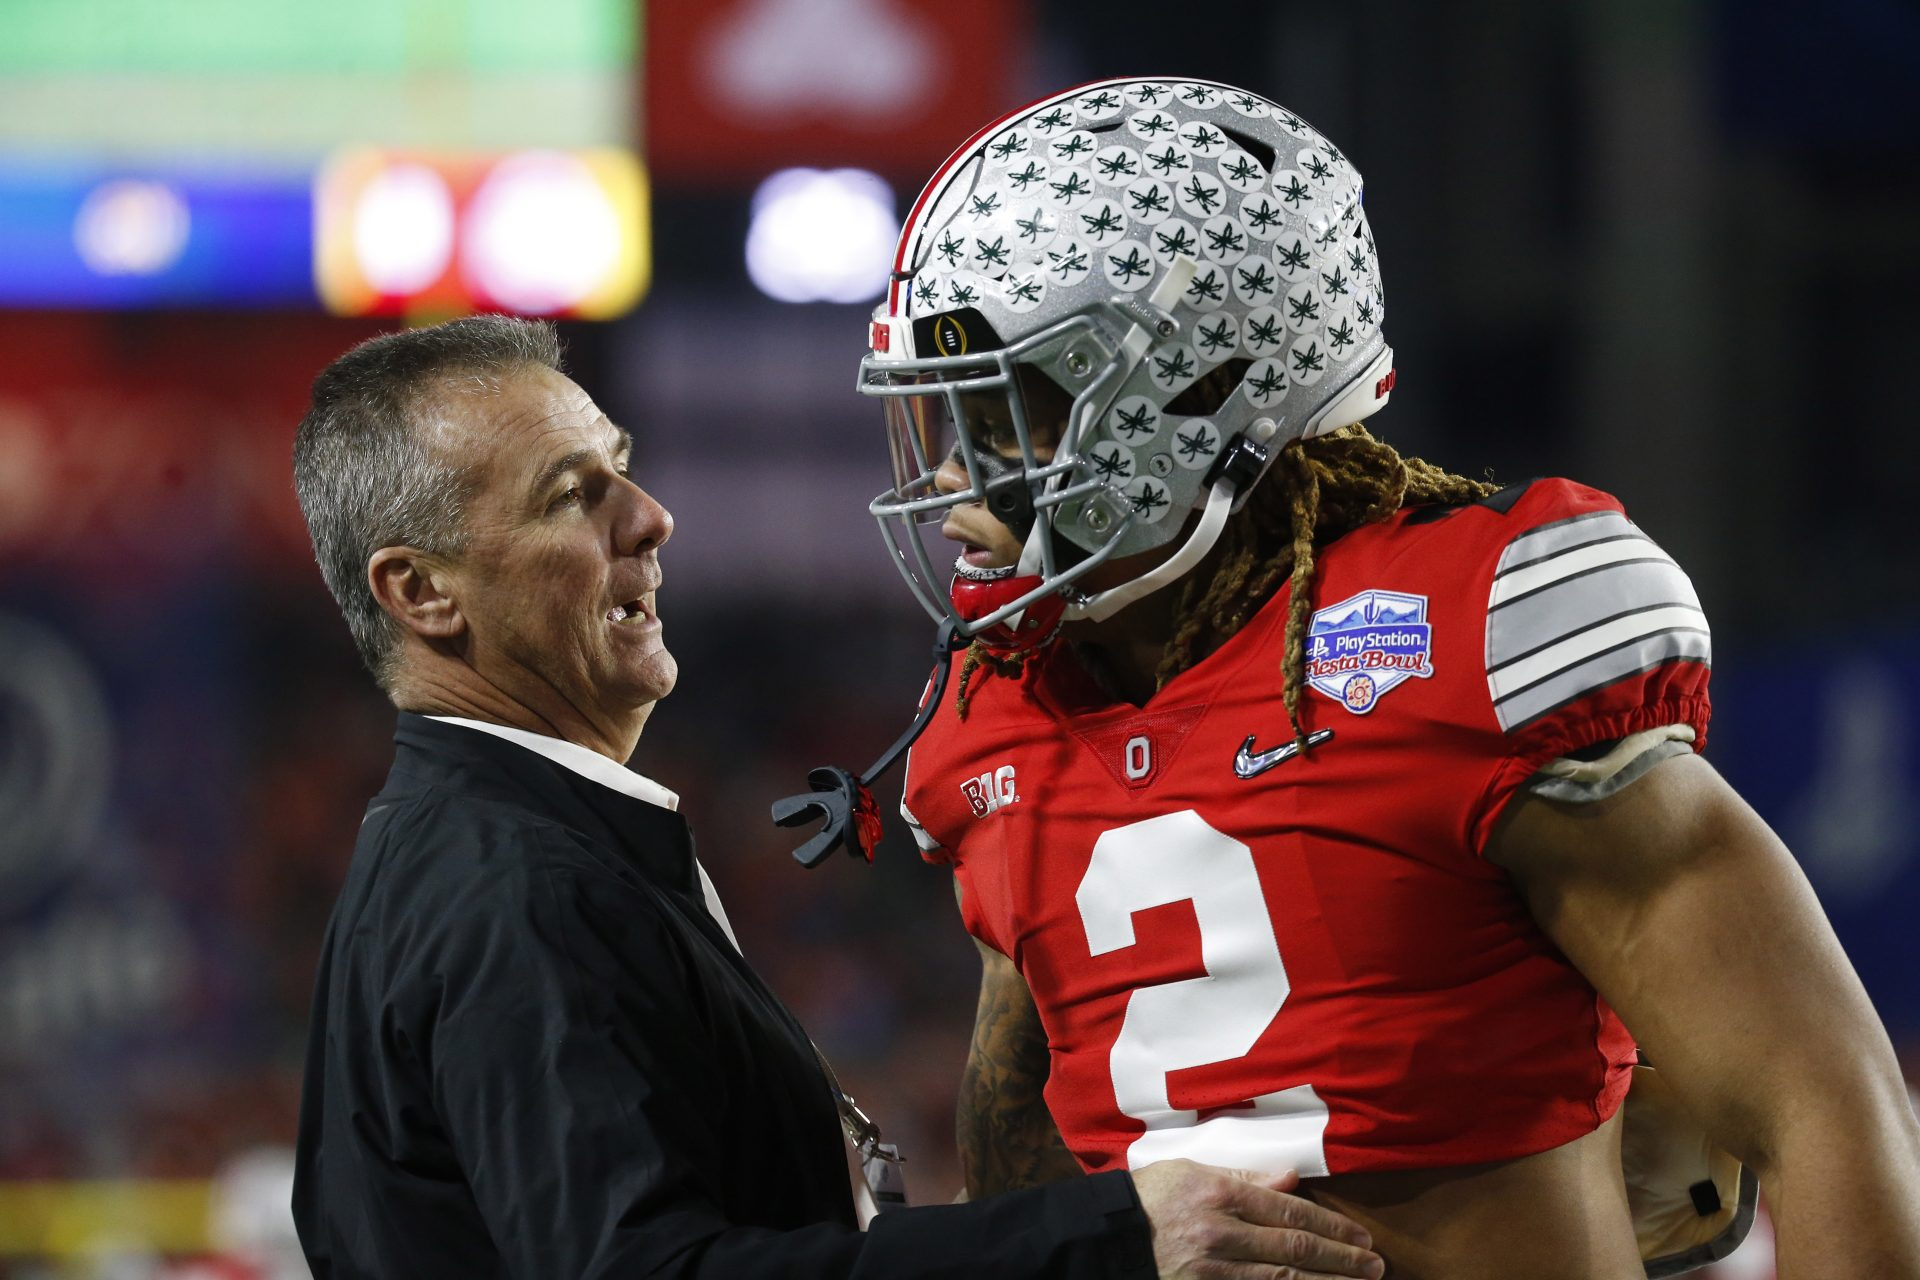 Mandatory Credit: Photo by Charles Baus/CSM/Shutterstock (10514187cr)Former Ohio State coach Urban Meyer with Ohio State Buckeyes defensive end Chase Young #2 during the Playstation Fiesta Bowl semifinal playoff game between the Ohio State Buckeyes and the Clemson Tigers at State Farm Stadium in Glendale, Arizona.